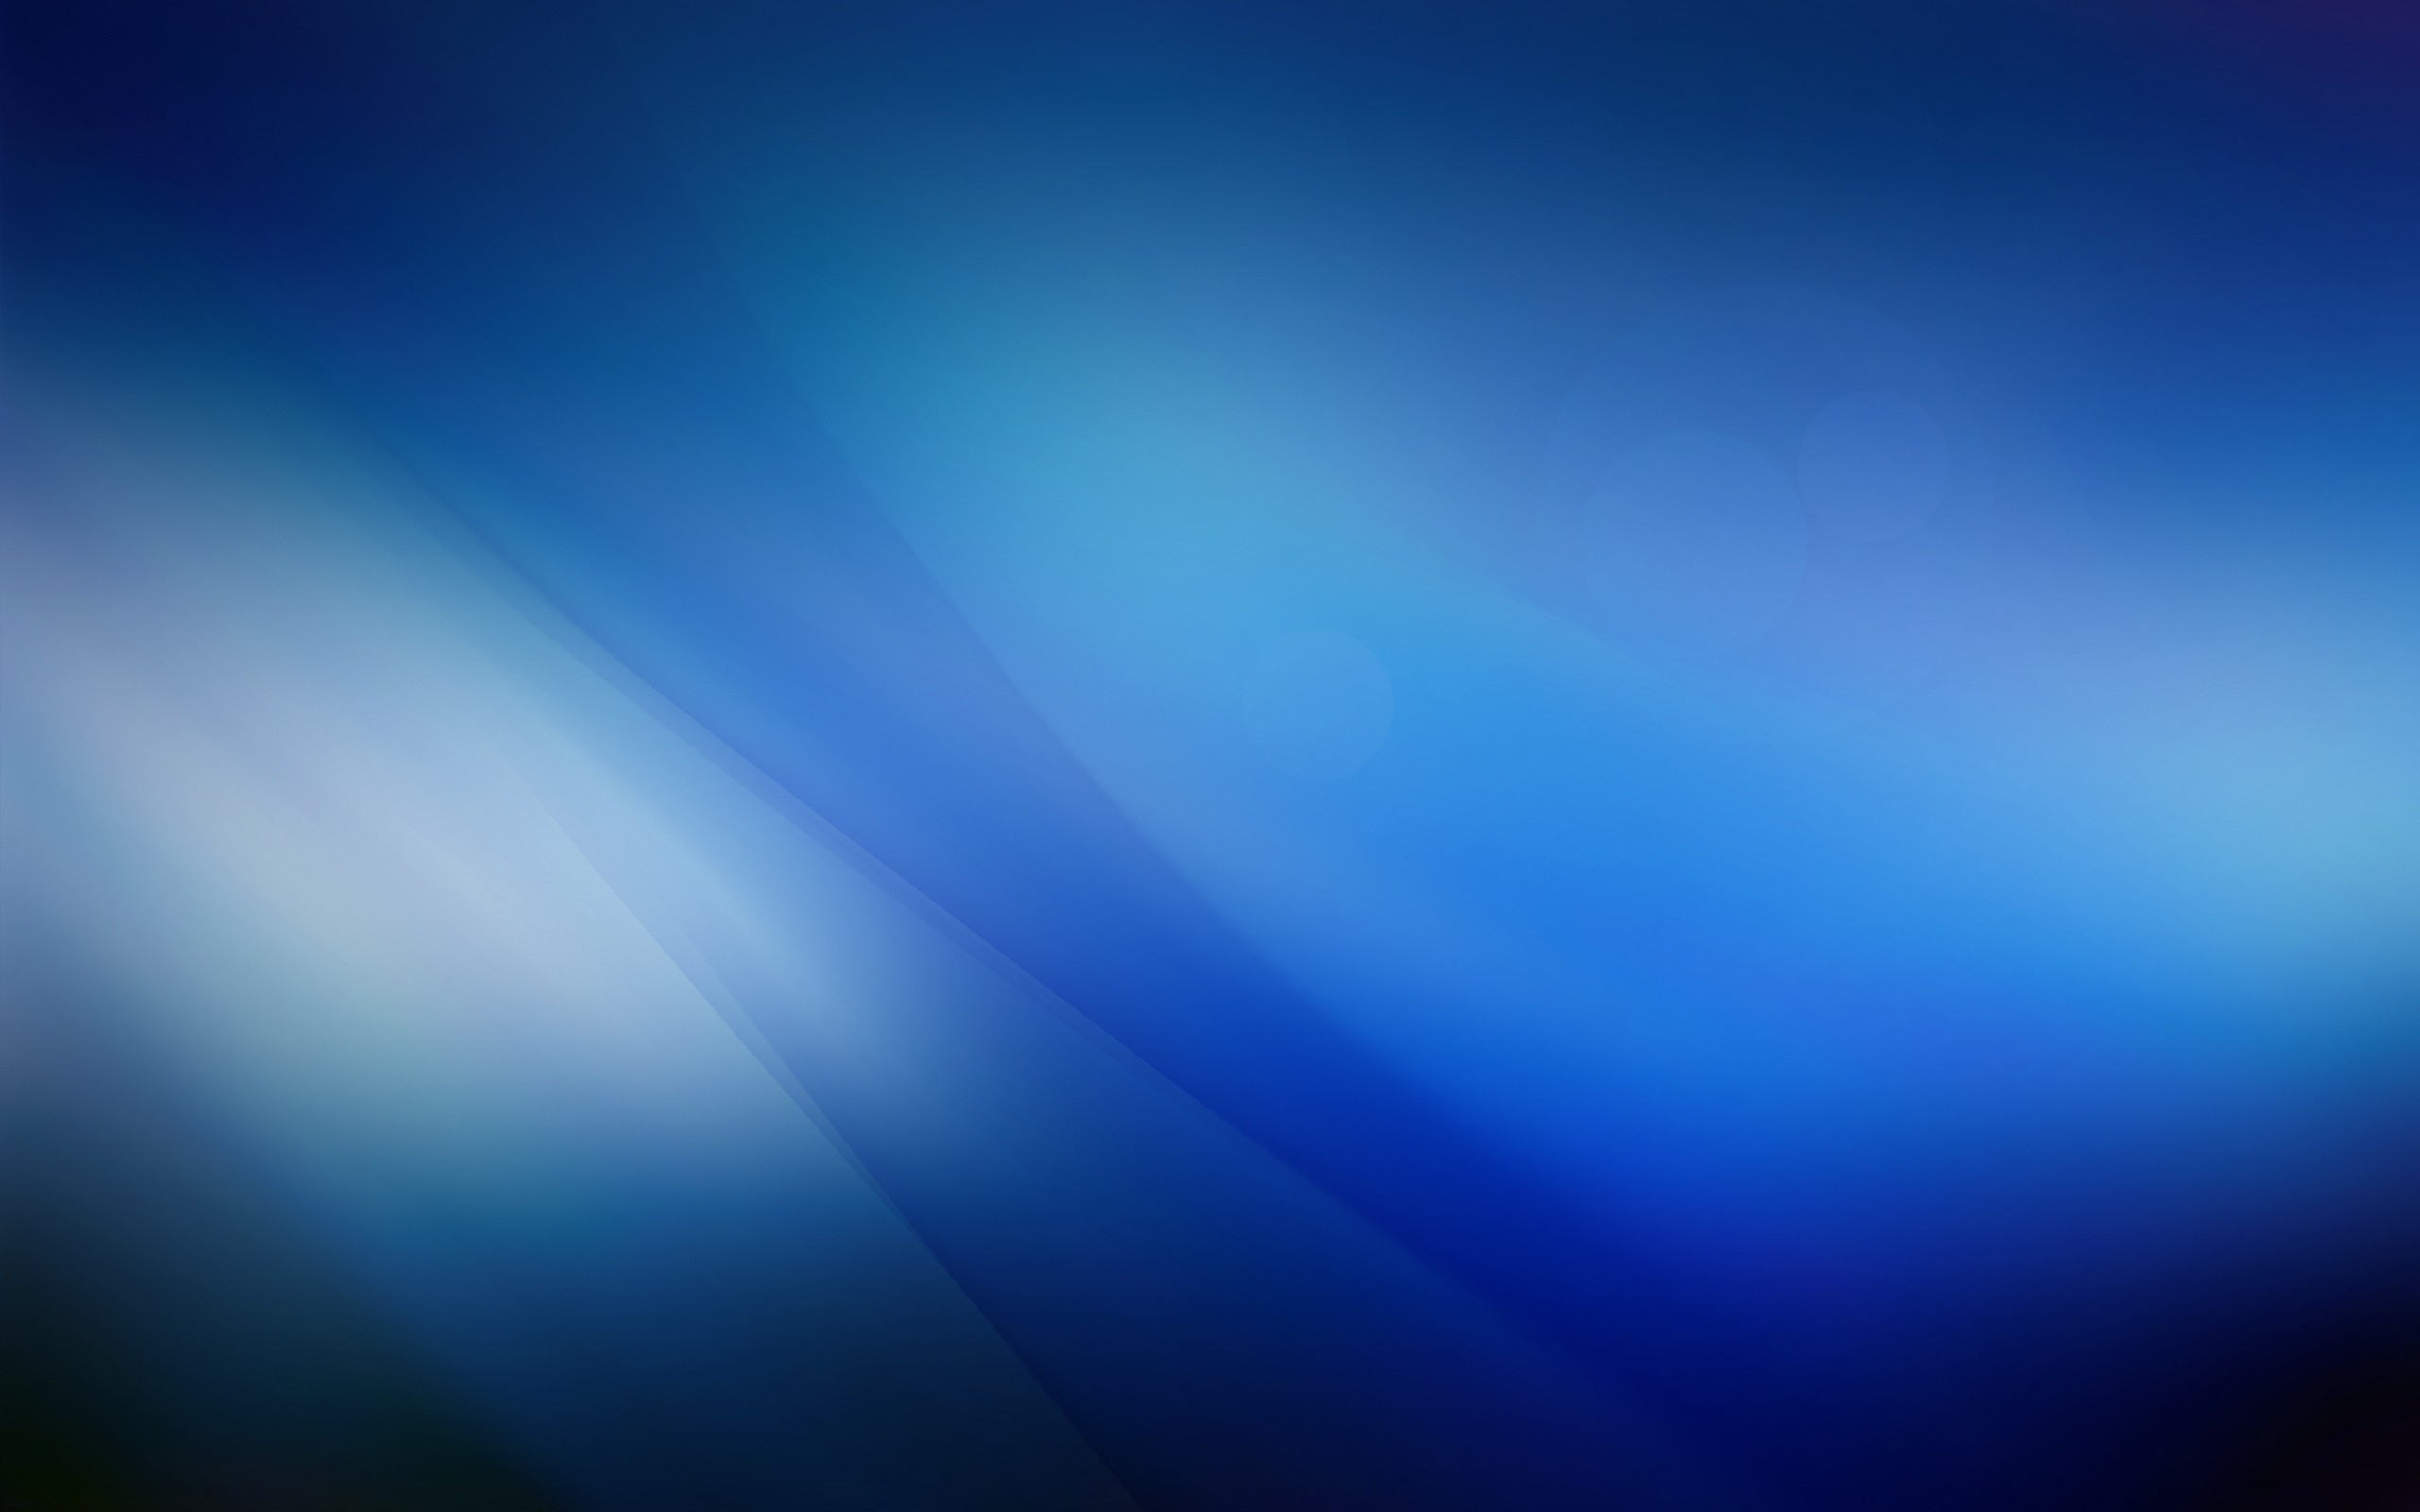 2560x1600 Wallpaper Blue background, Wave, Abstract